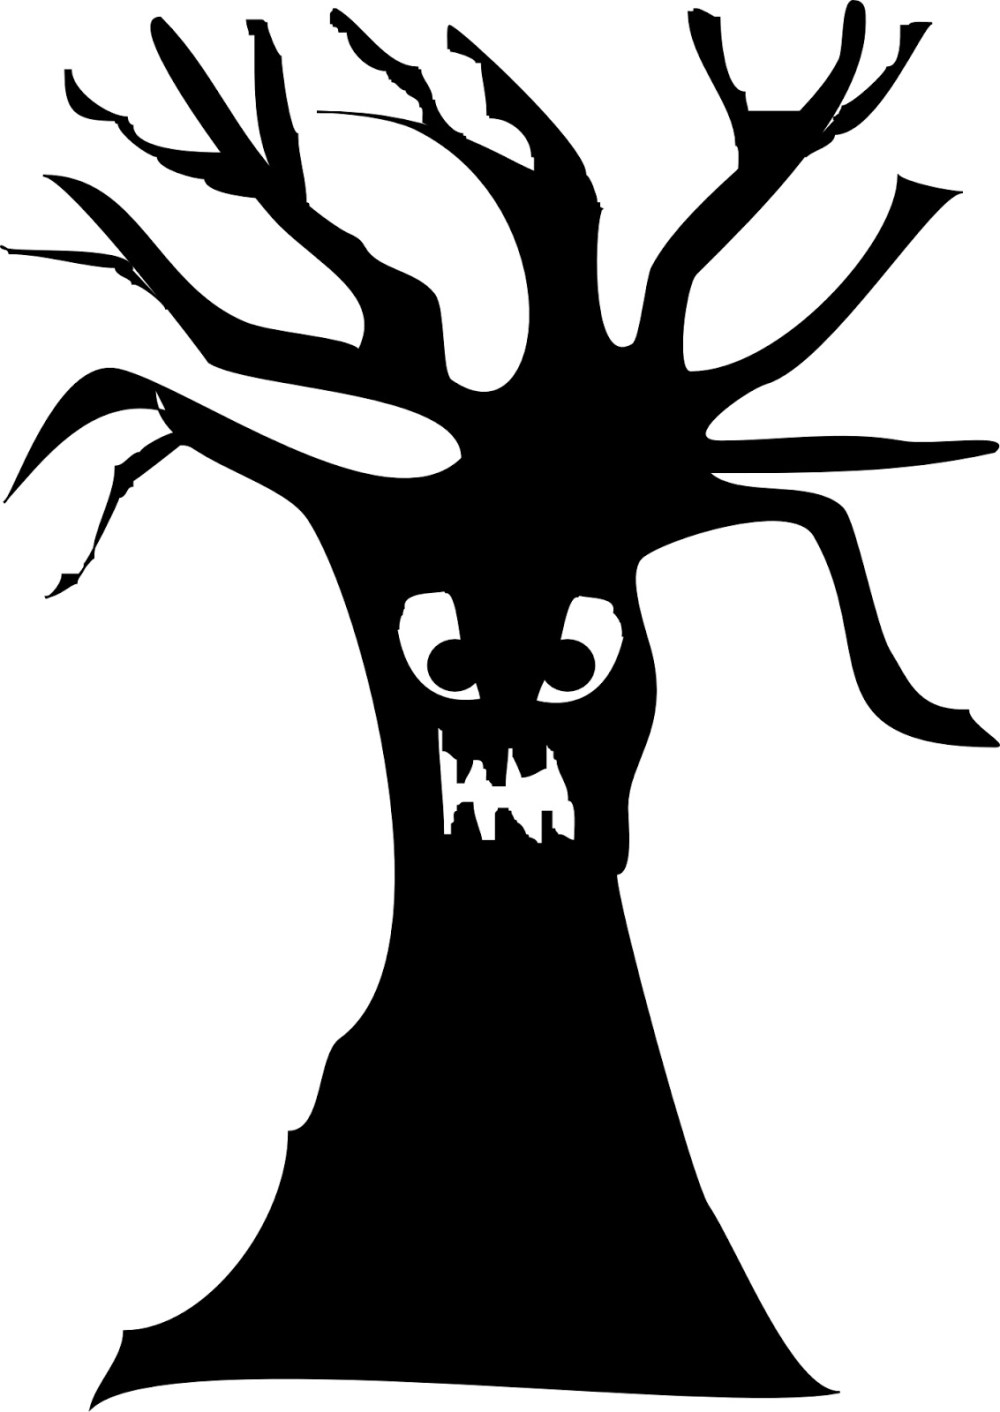 medium resolution of scary tree silhouette clipart library